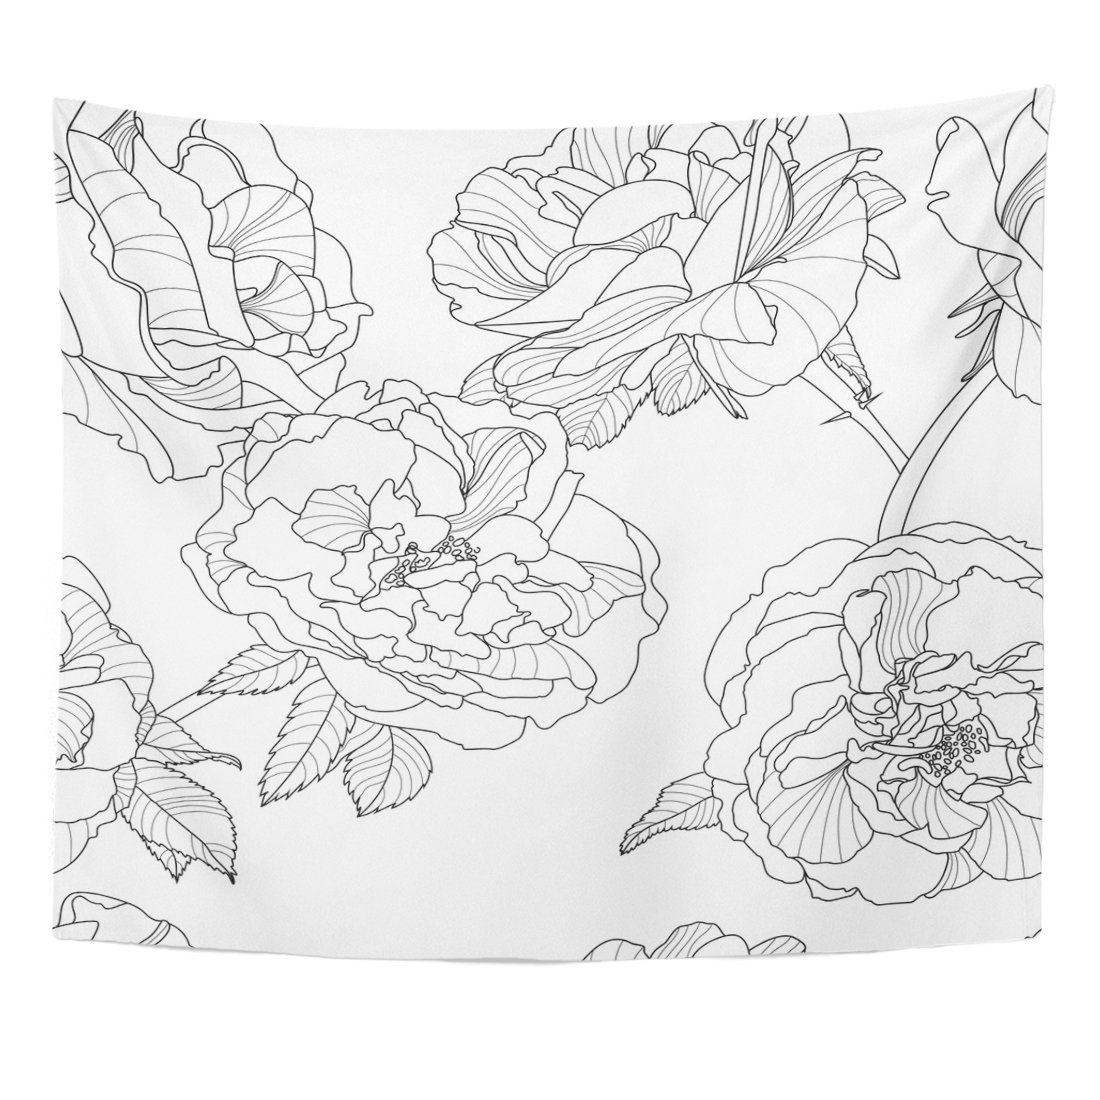 Line Floral Black And White With Outline Rose Flowers Design Linear Tapestry Home Decor Wall Hanging For Living Room Bedroom